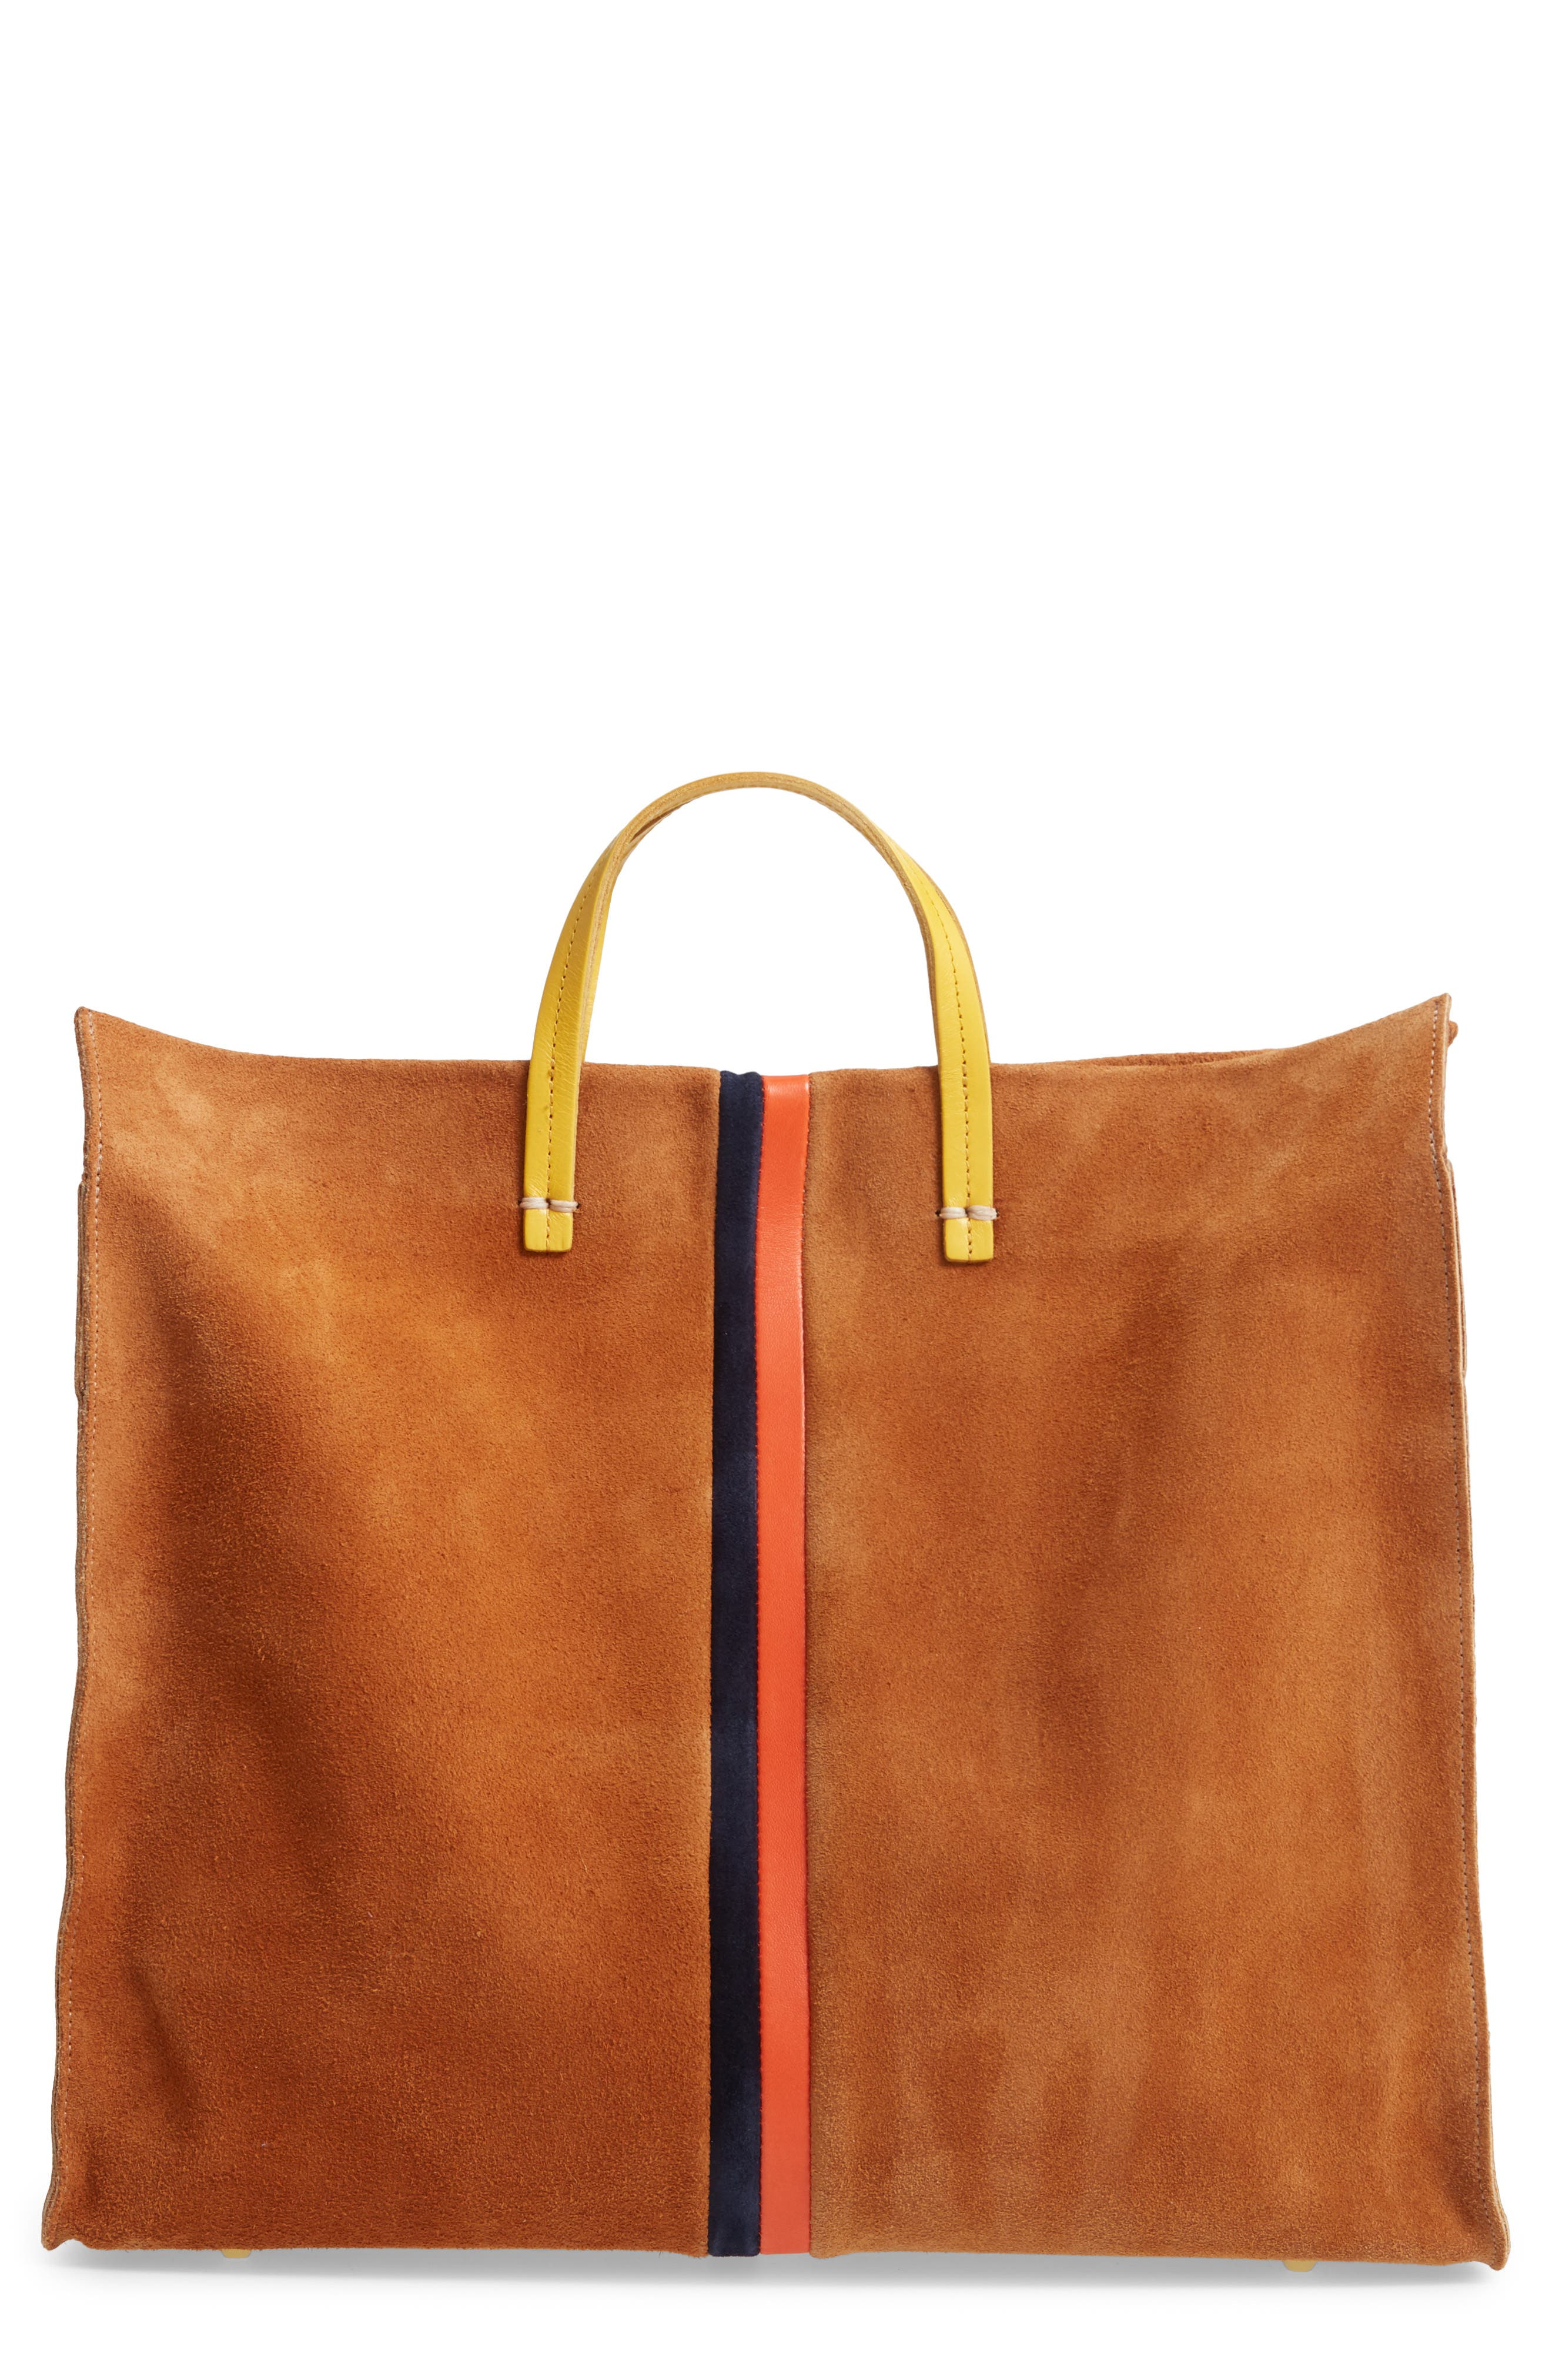 Simple Leather Tote, Main, color, CAMEL/ NAVY RED STRIPES